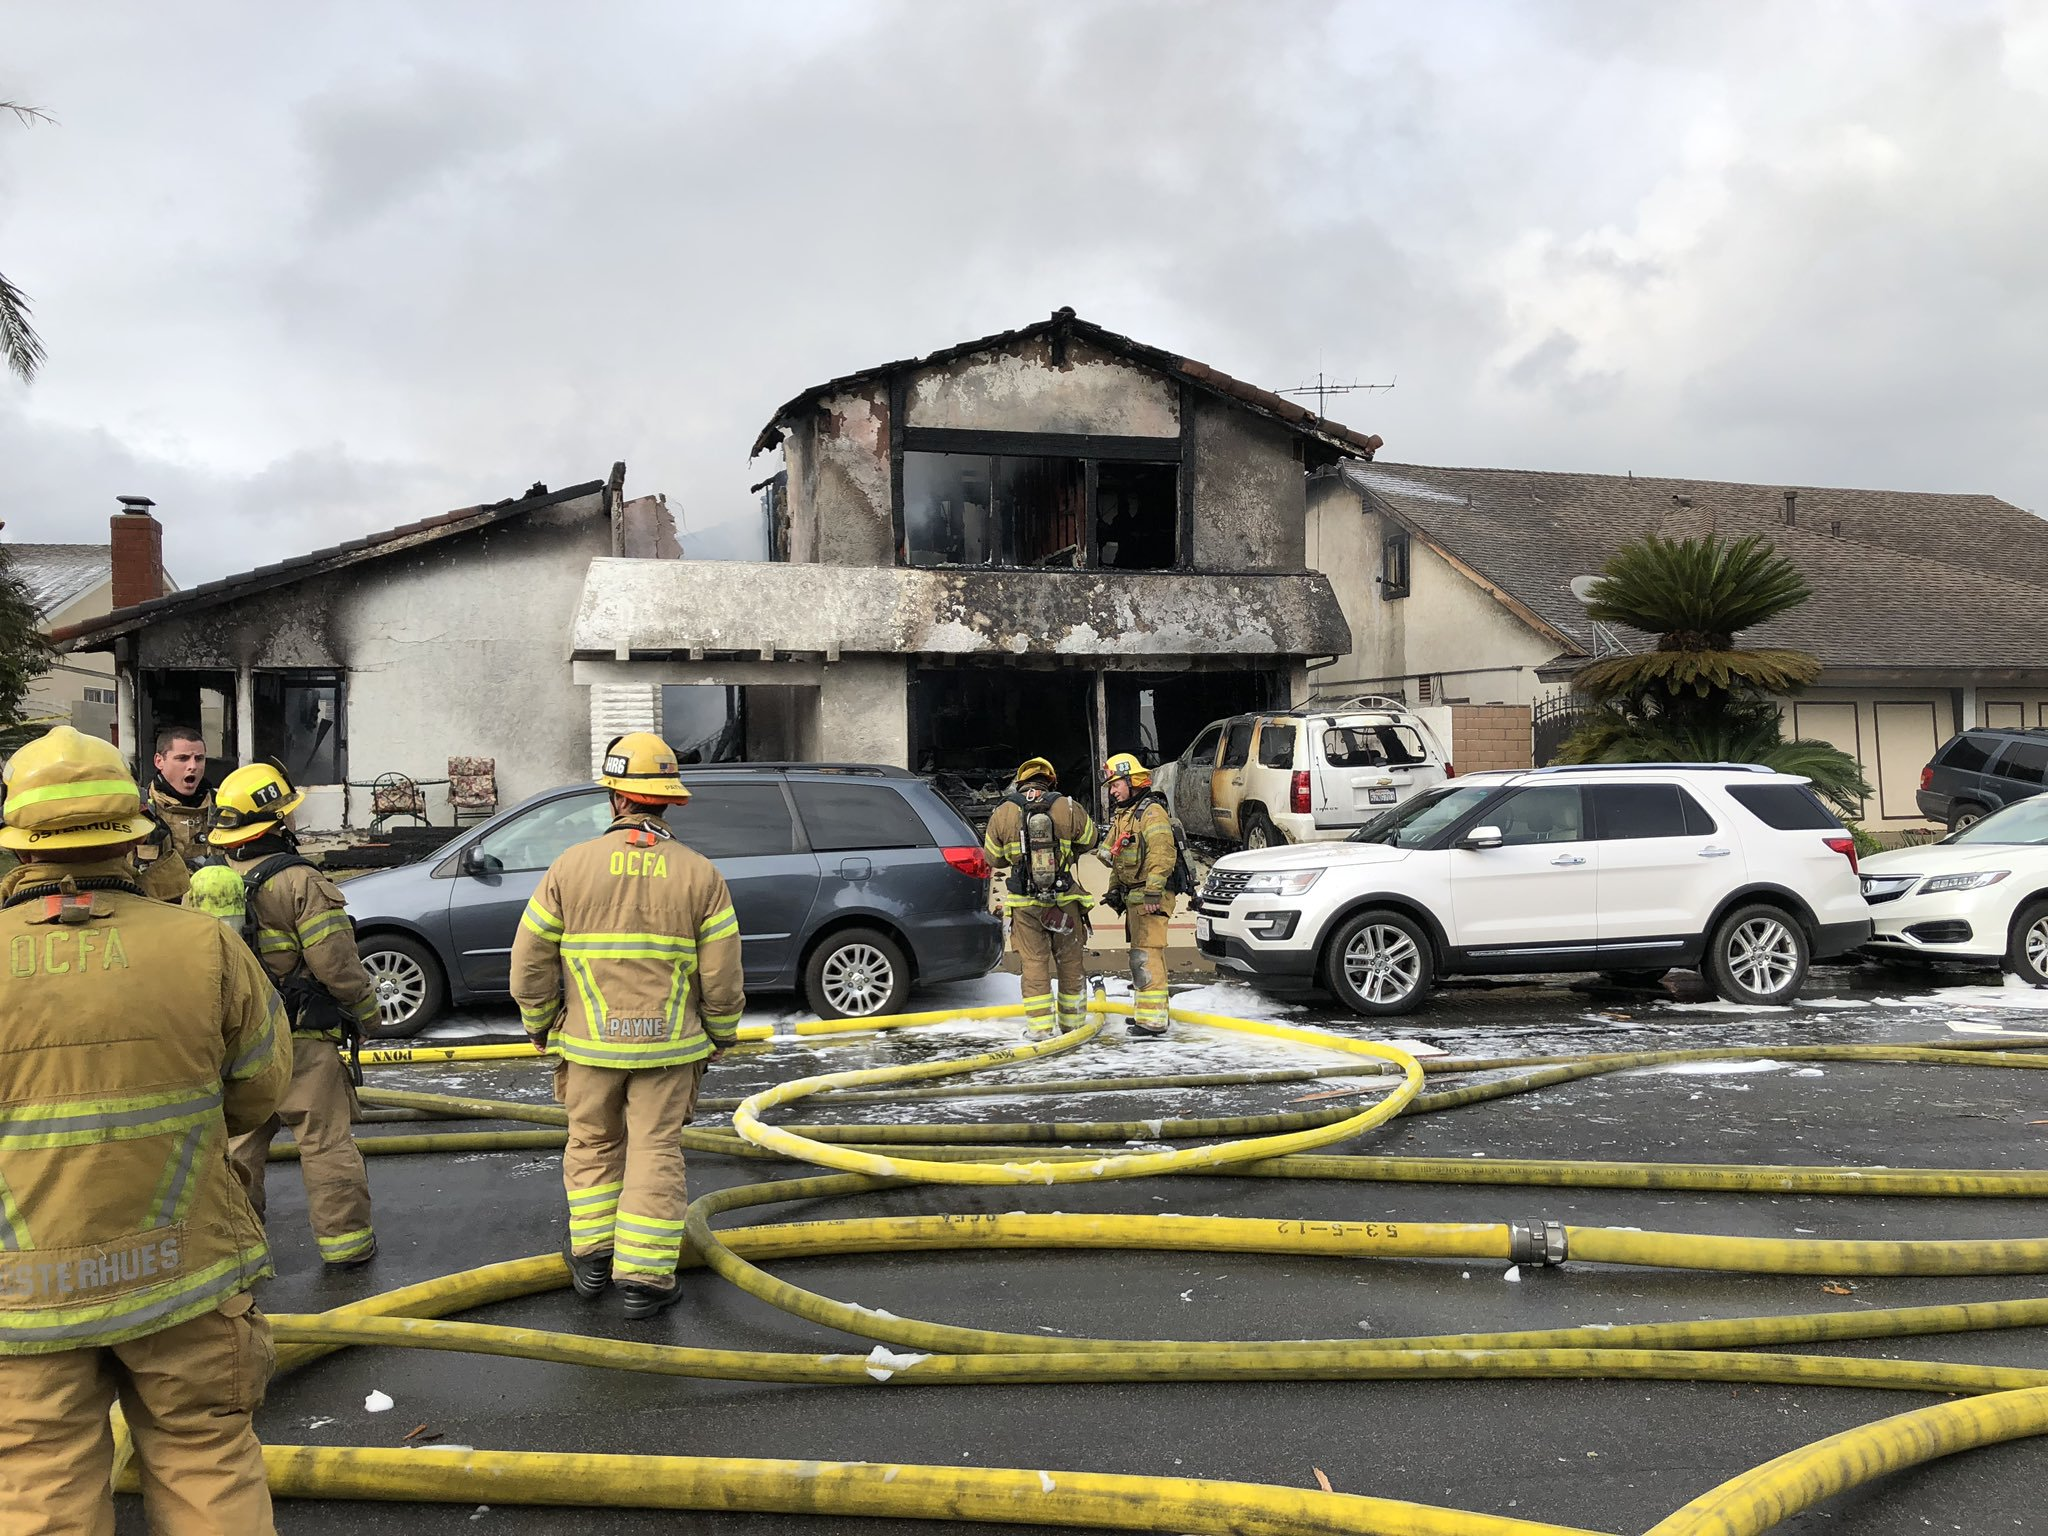 Five dead, two hospitalized after plane crashes into home in